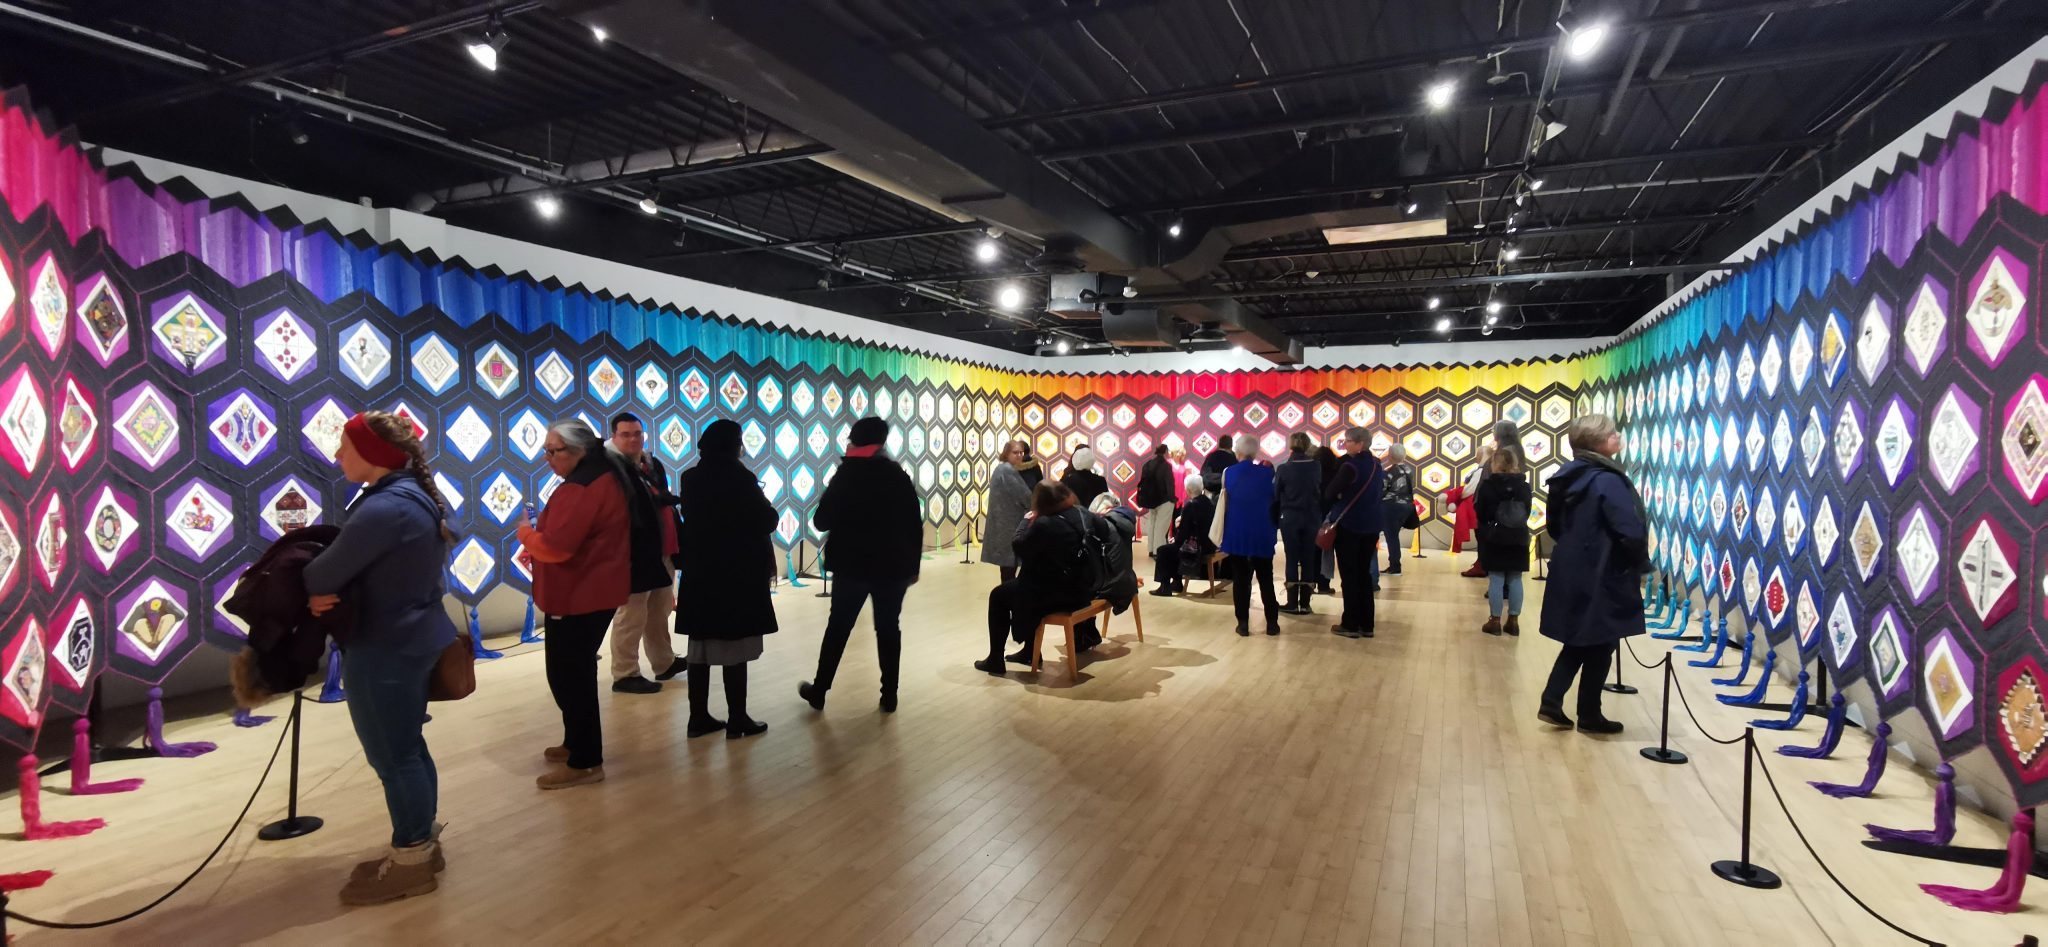 People gather to observe a rainbow-coloured installation spanning wall-to-wall.